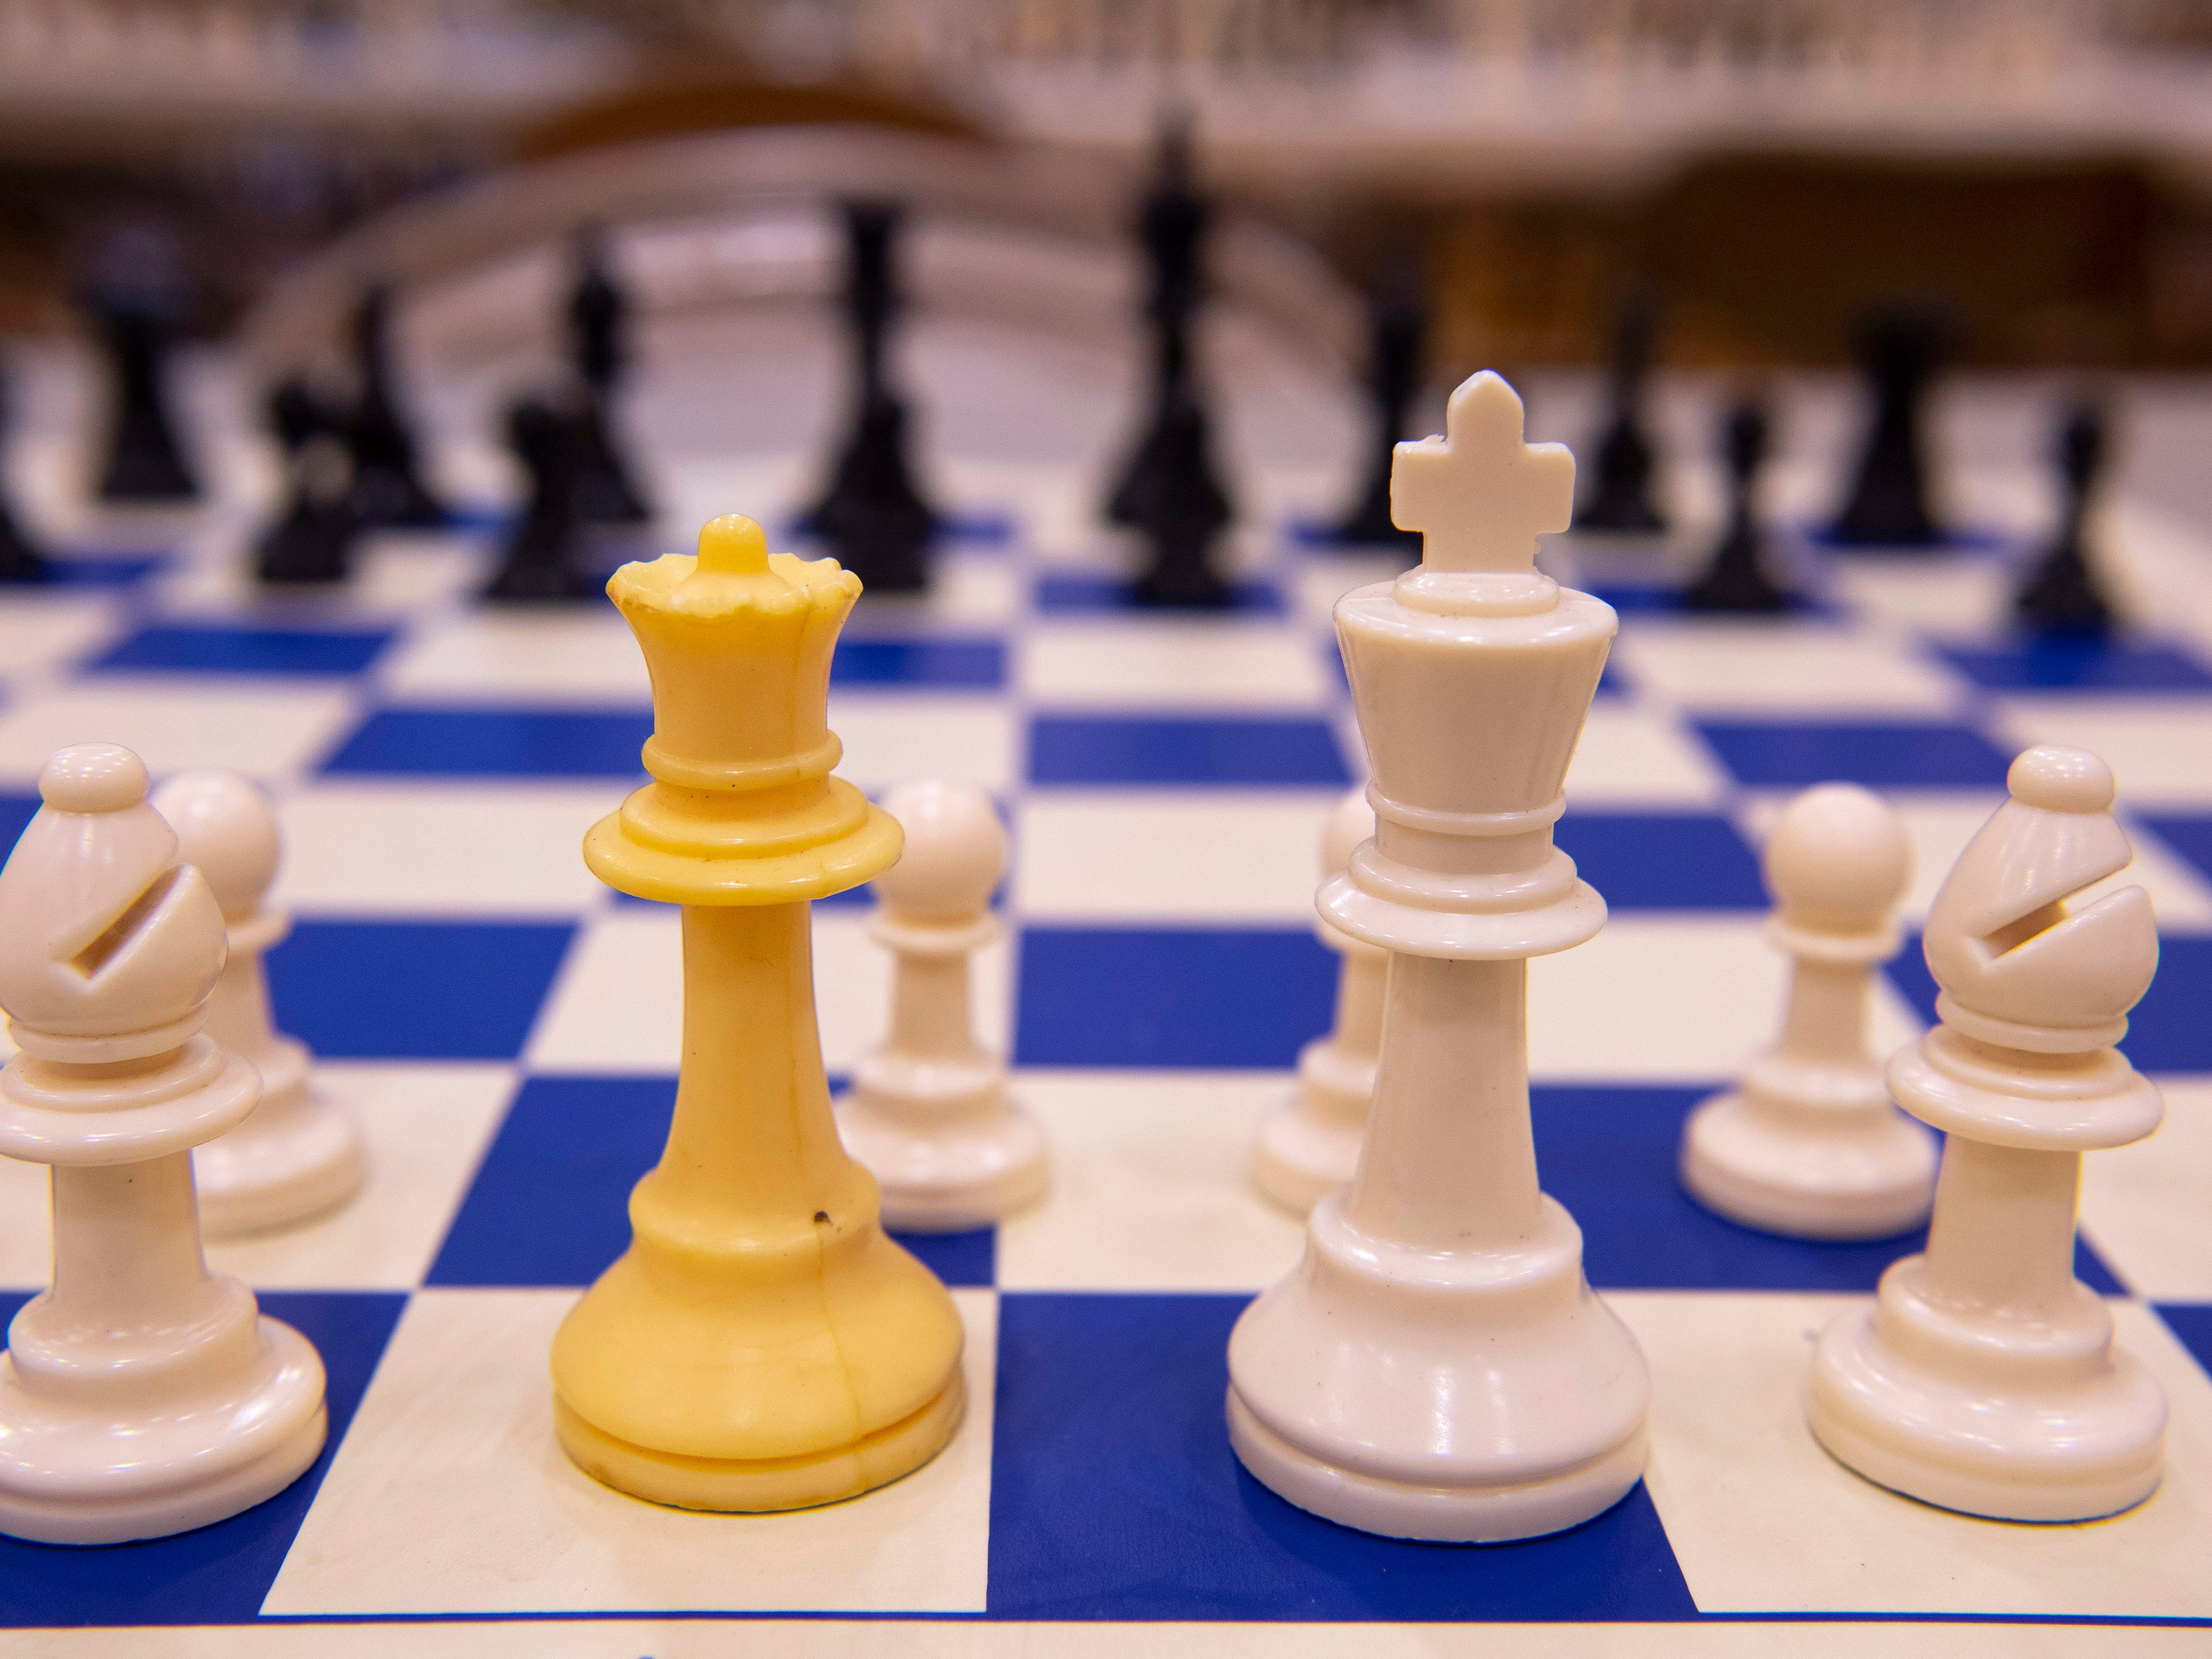 Chess pieces are set up on about 100 boards in preparation for the K-12 Spring Scholastic Chess Tournament at North Junior High School Saturday.